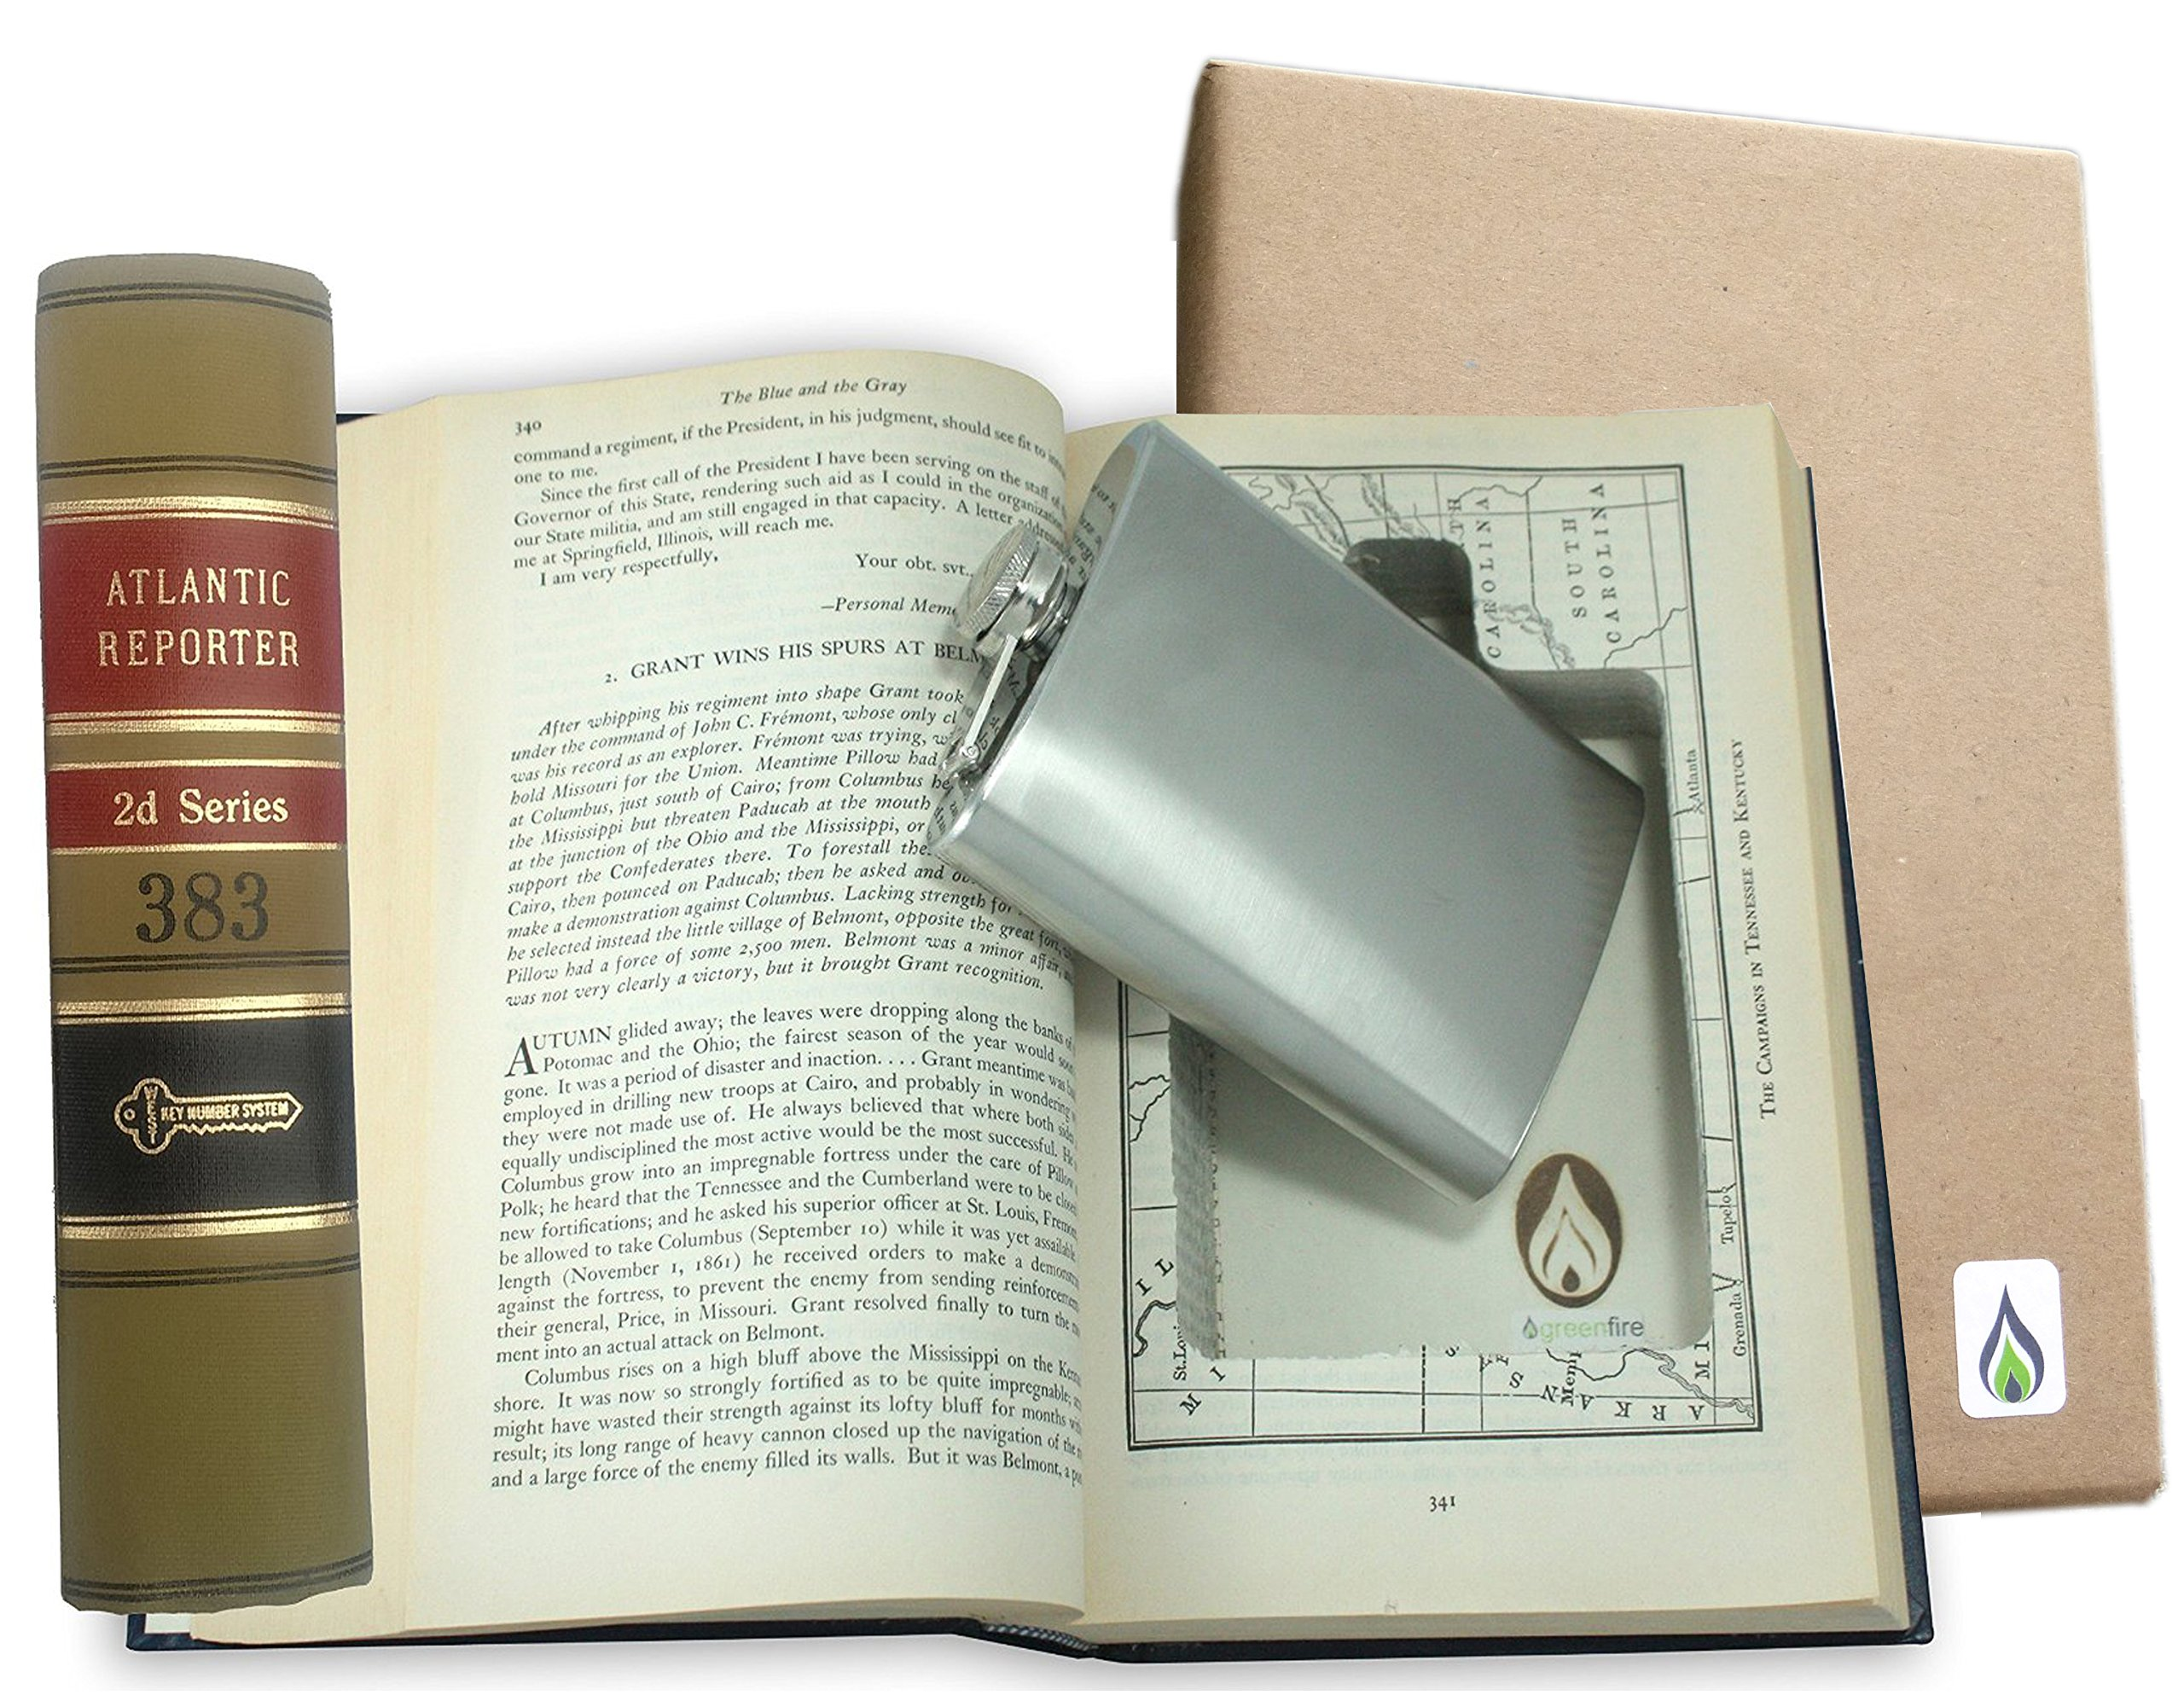 SneakyBooks Recycled Law Book Hidden Flask Diversion Safe (6 Fluid Ounce Flask Included) - Good for Booze/Jewelry/Coins/Money/valuables/Medicine by Greenfire